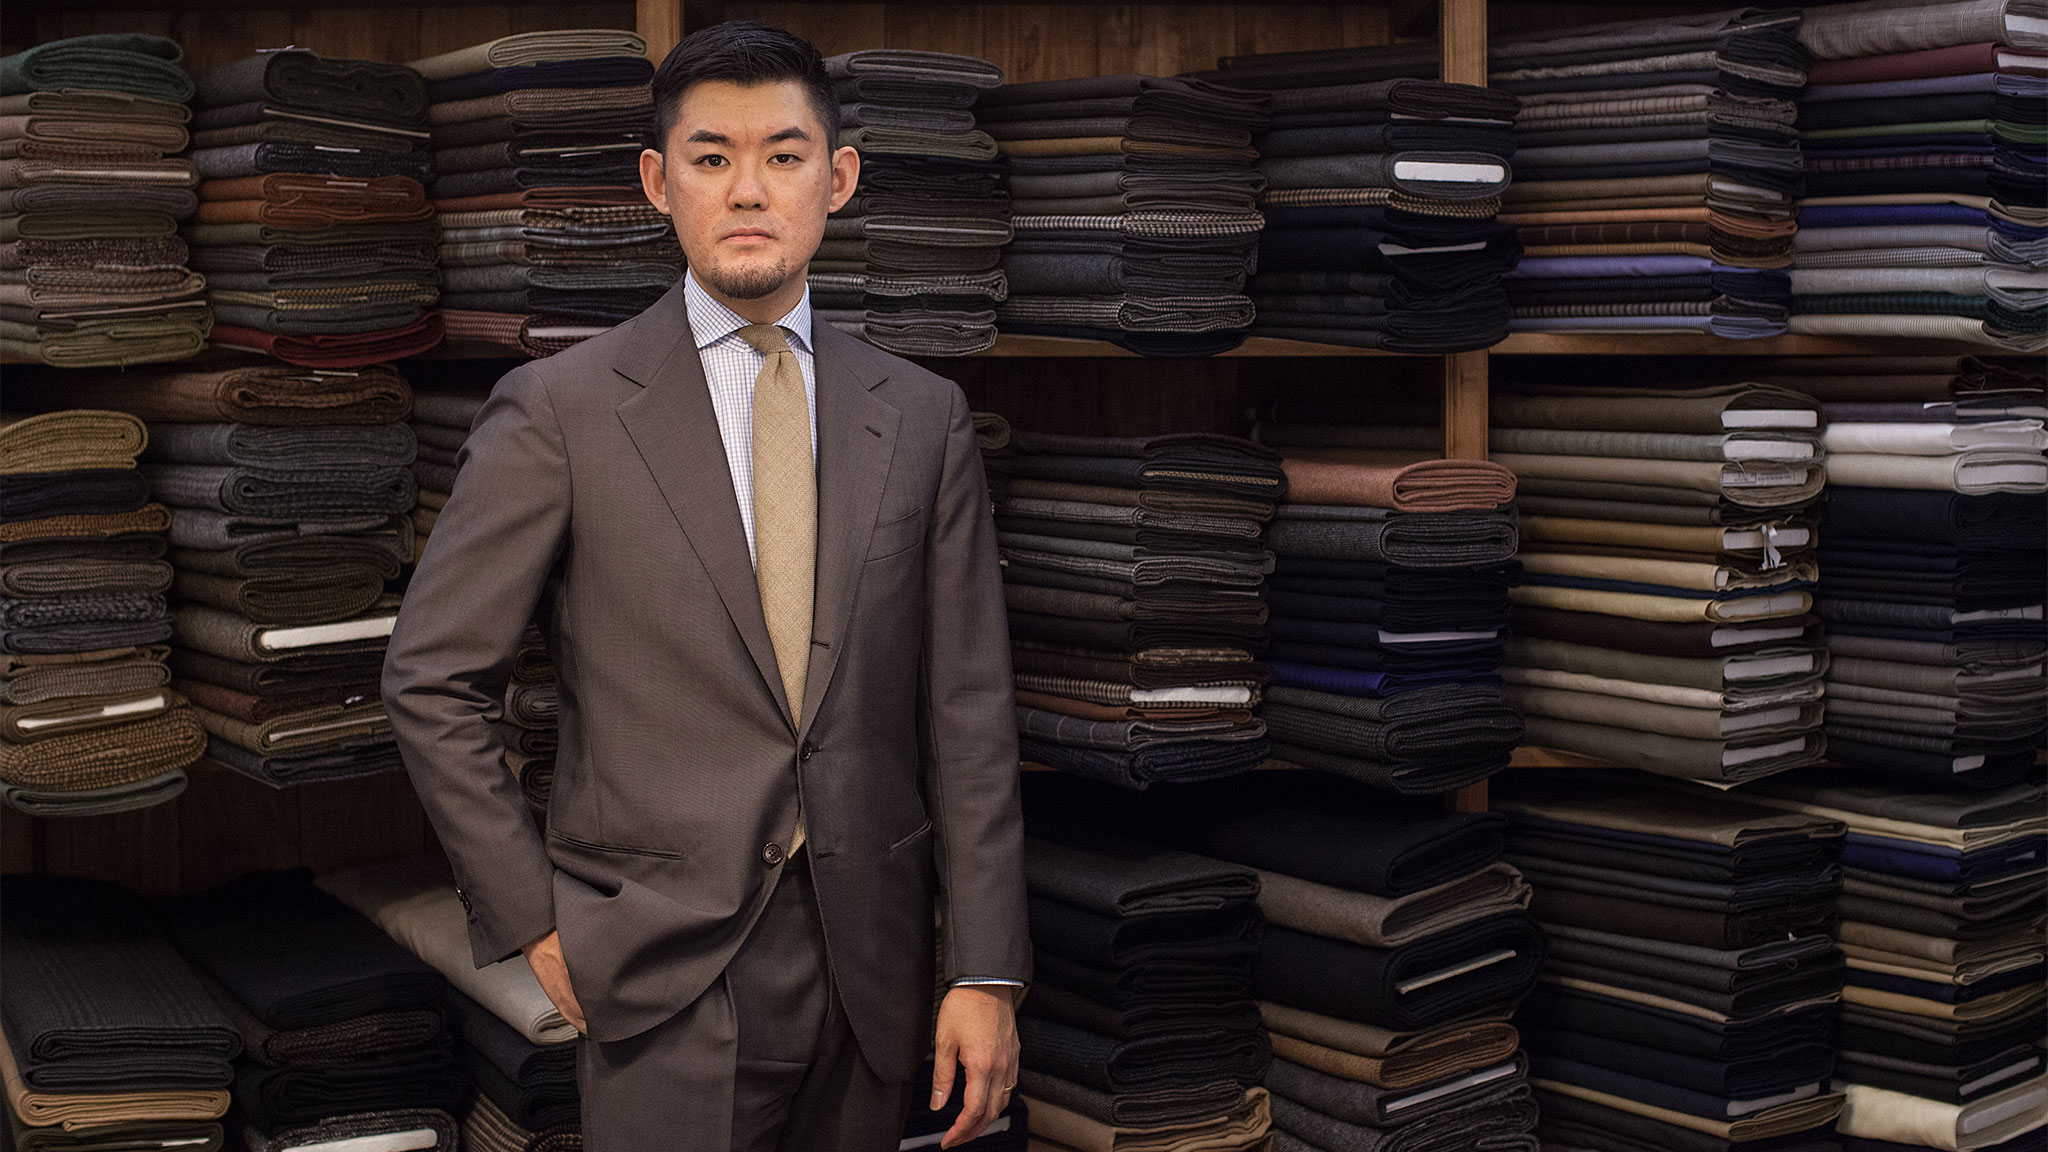 The Japanese tailor who found his perfect fit in Florence